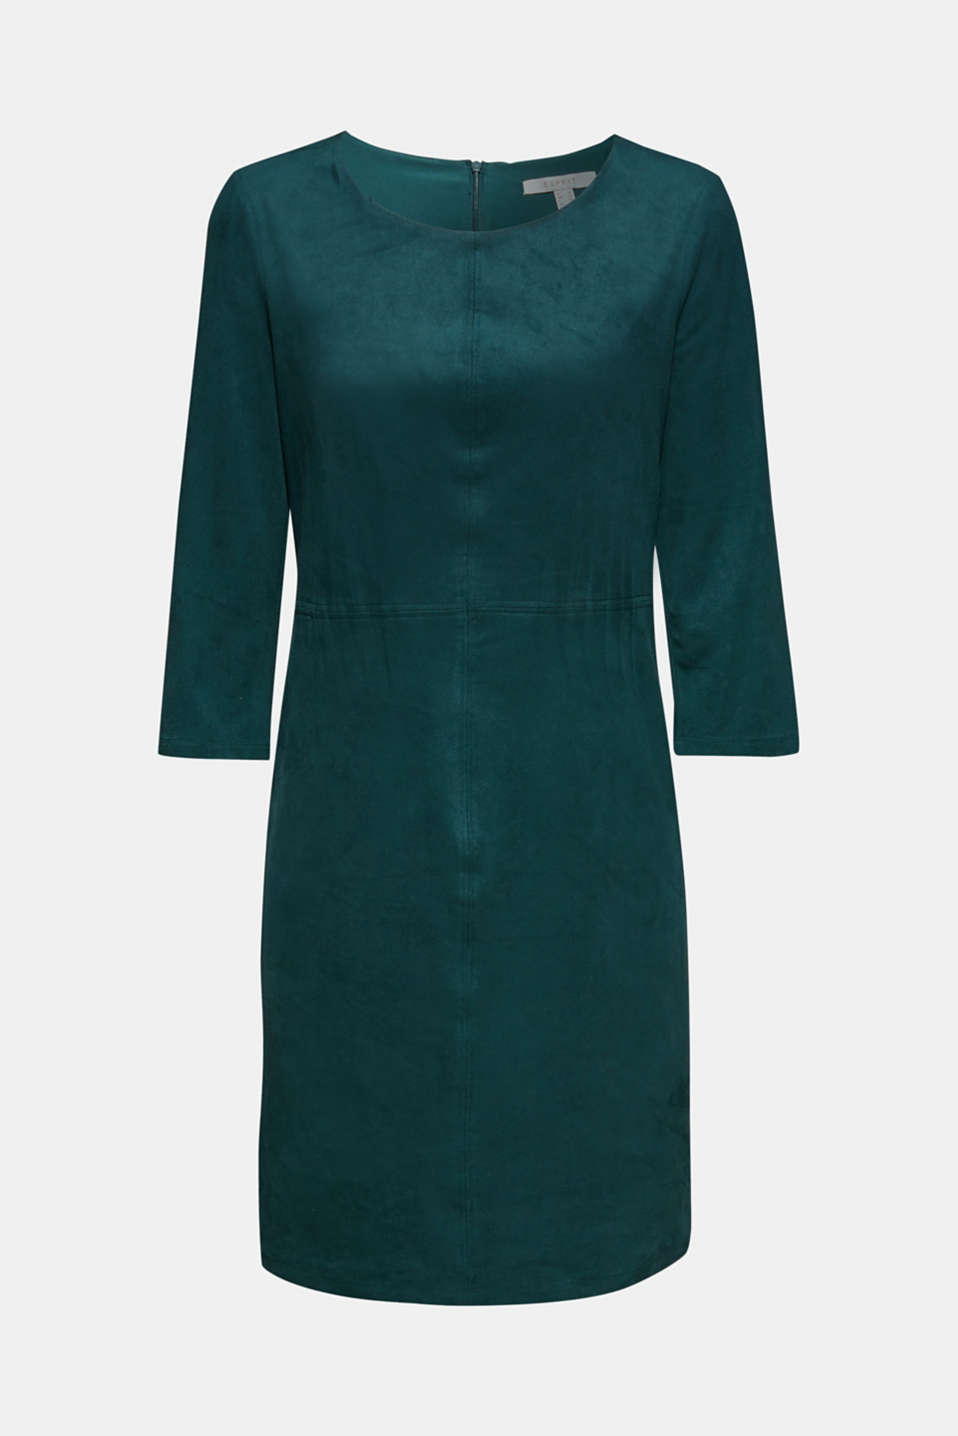 Stretch faux leather dress, DARK TEAL GREEN, detail image number 5